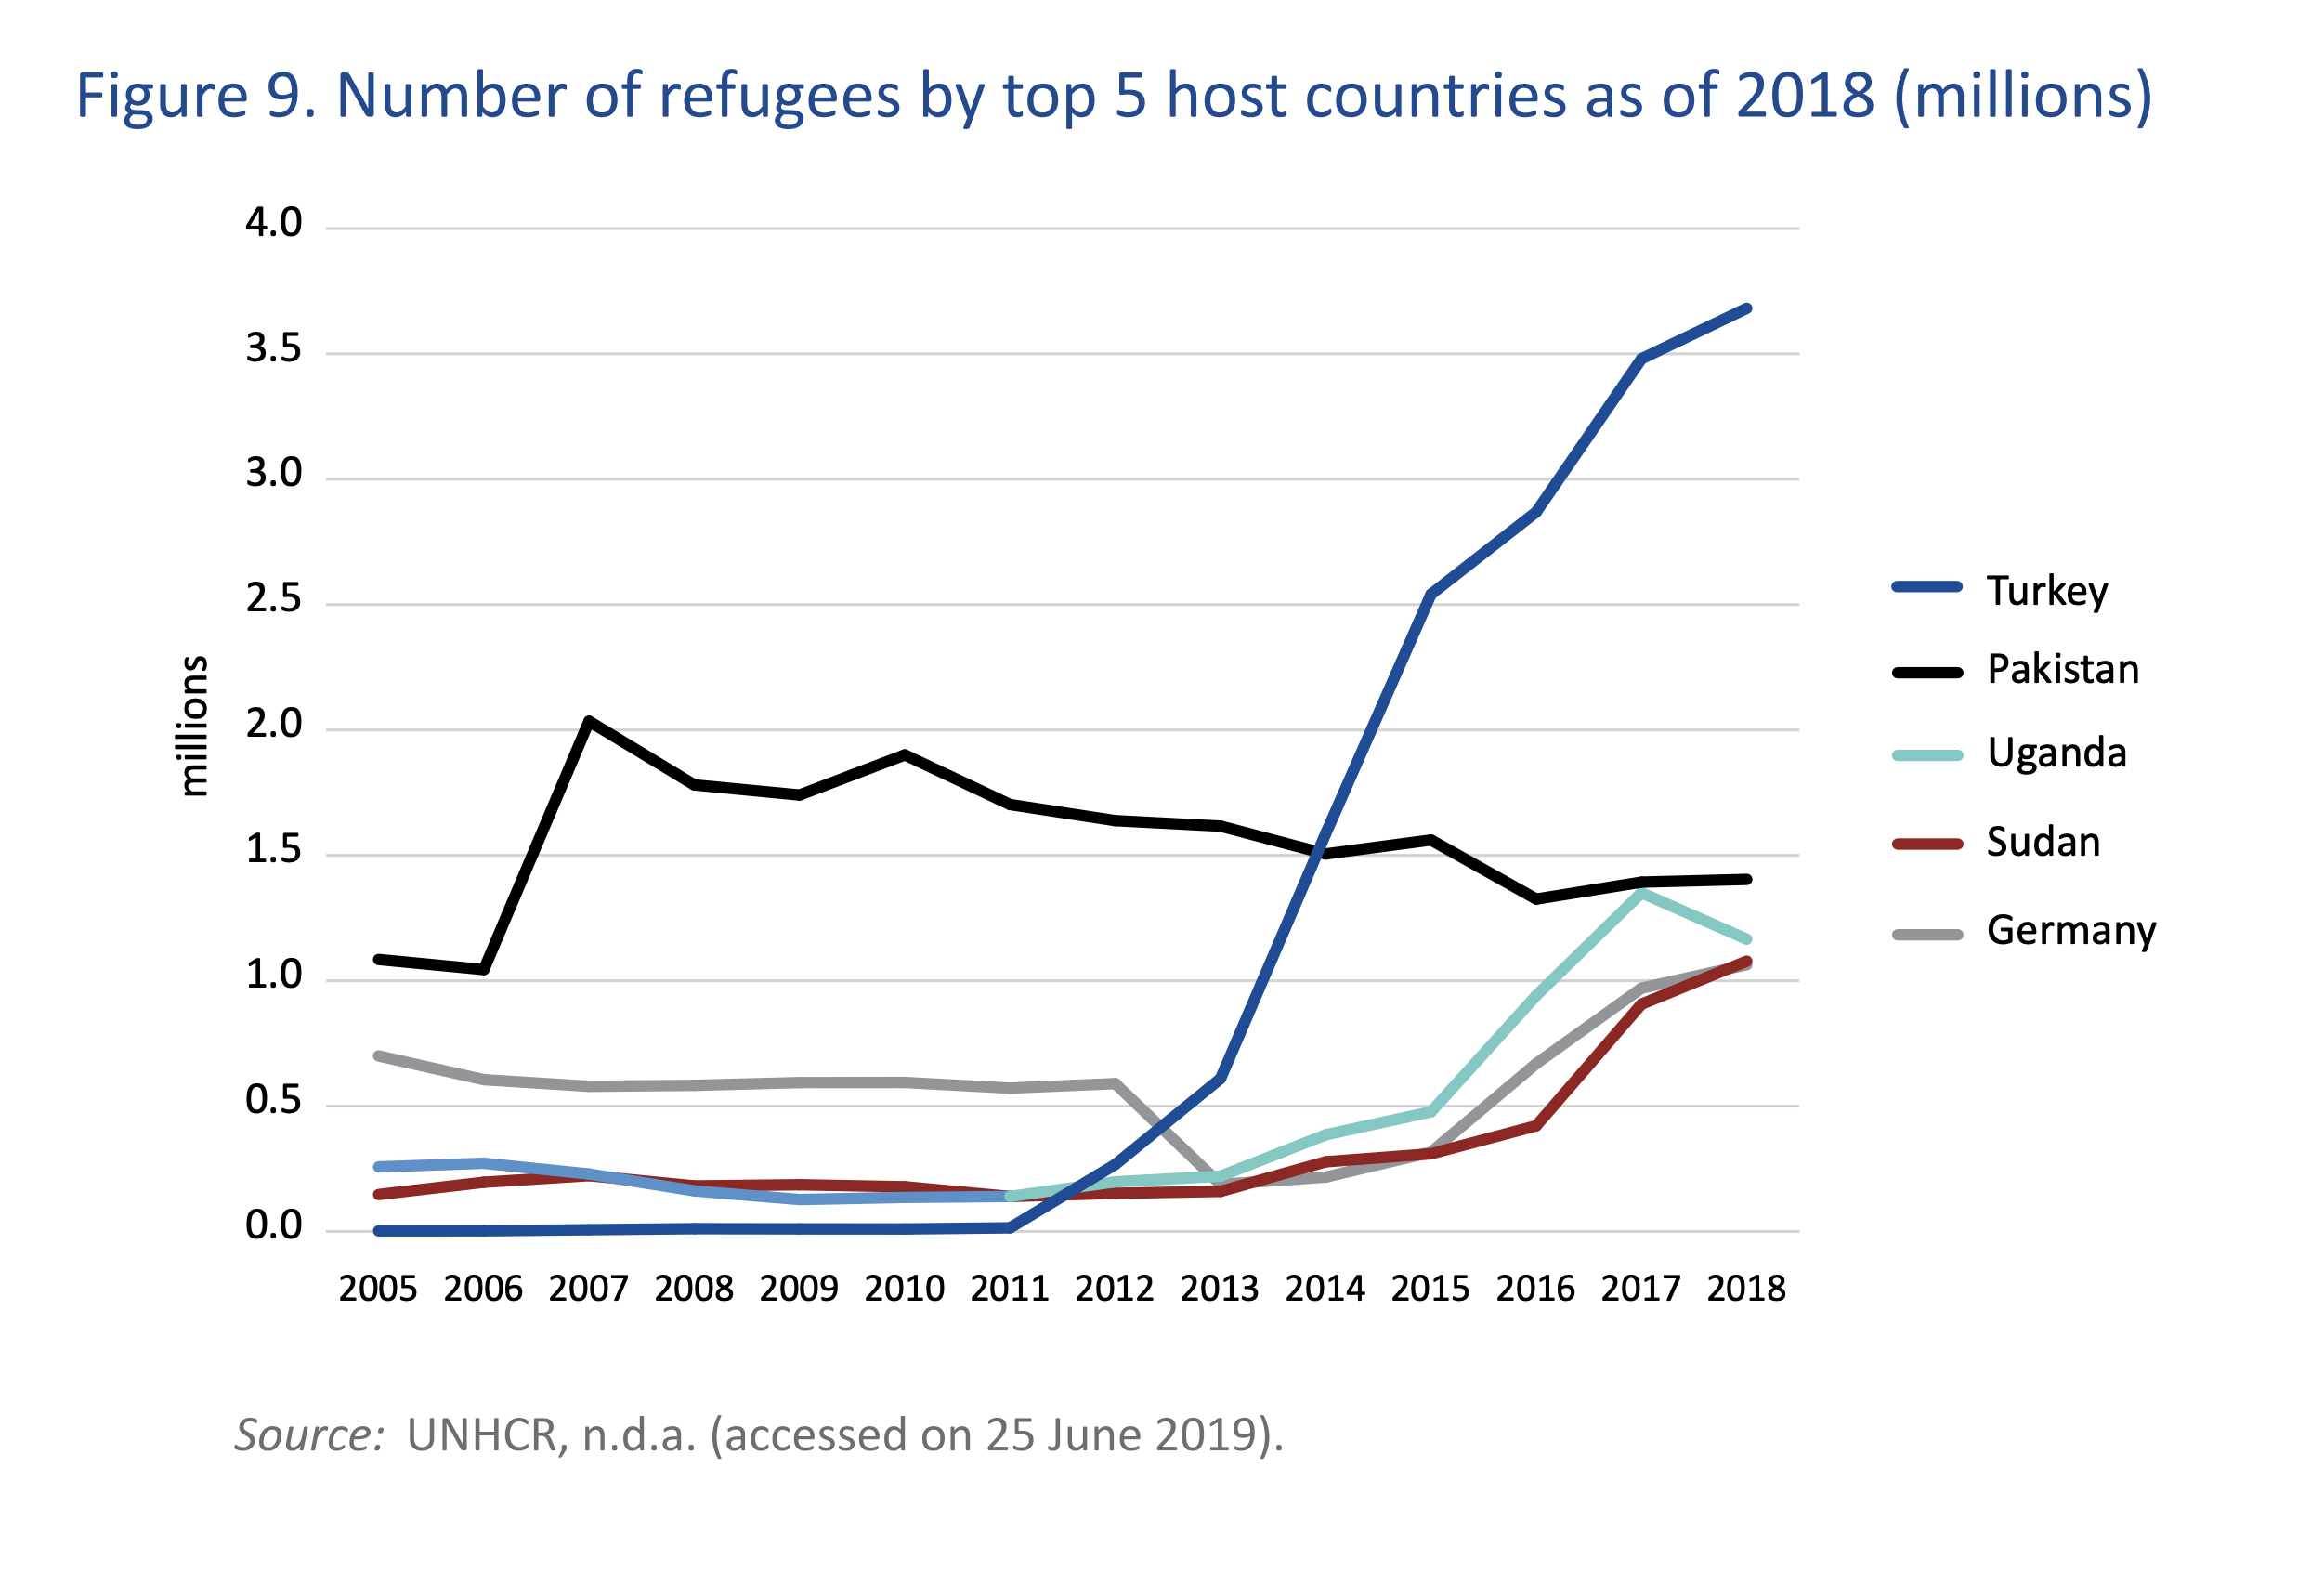 Numbers of refugees in the top-5 host countries